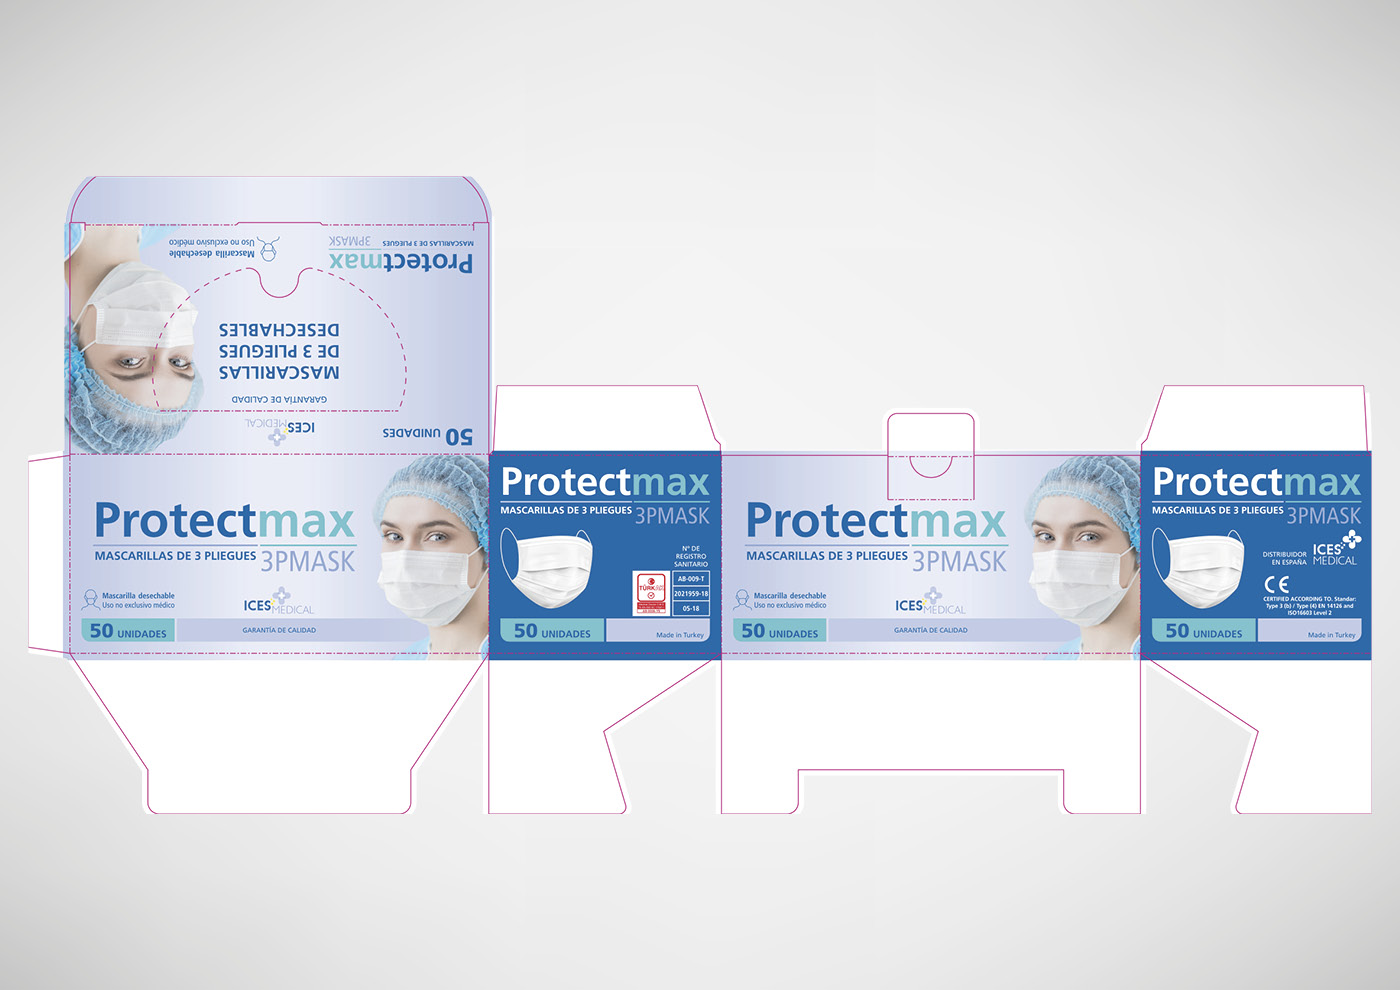 Ices Medical - Packaging mascarillas - Ivan Diez